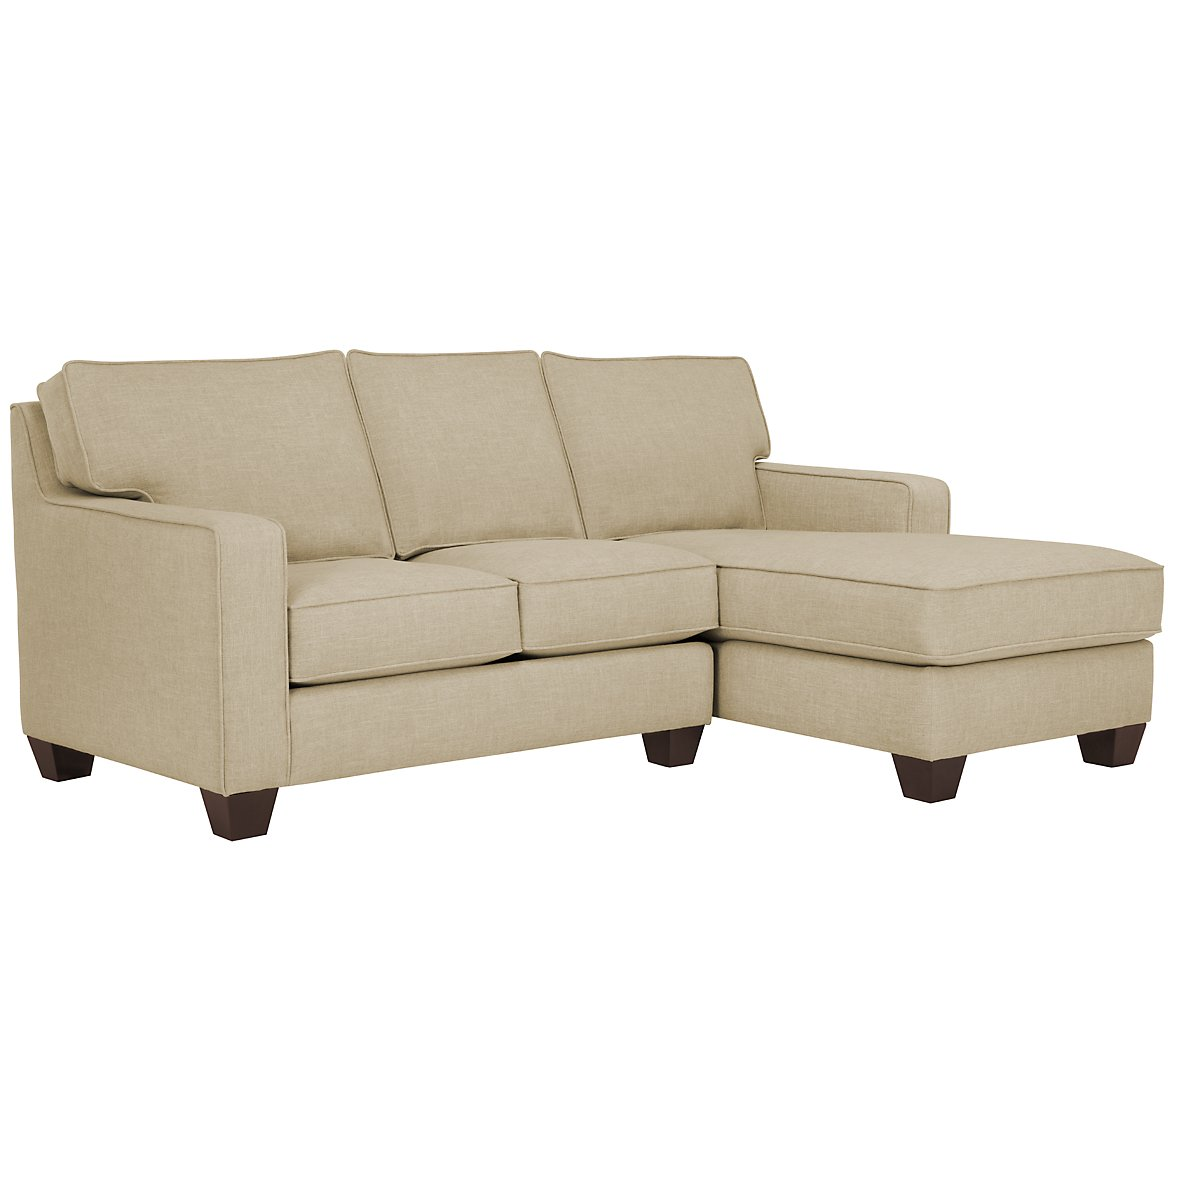 city furniture york beige fabric small right chaise sectional